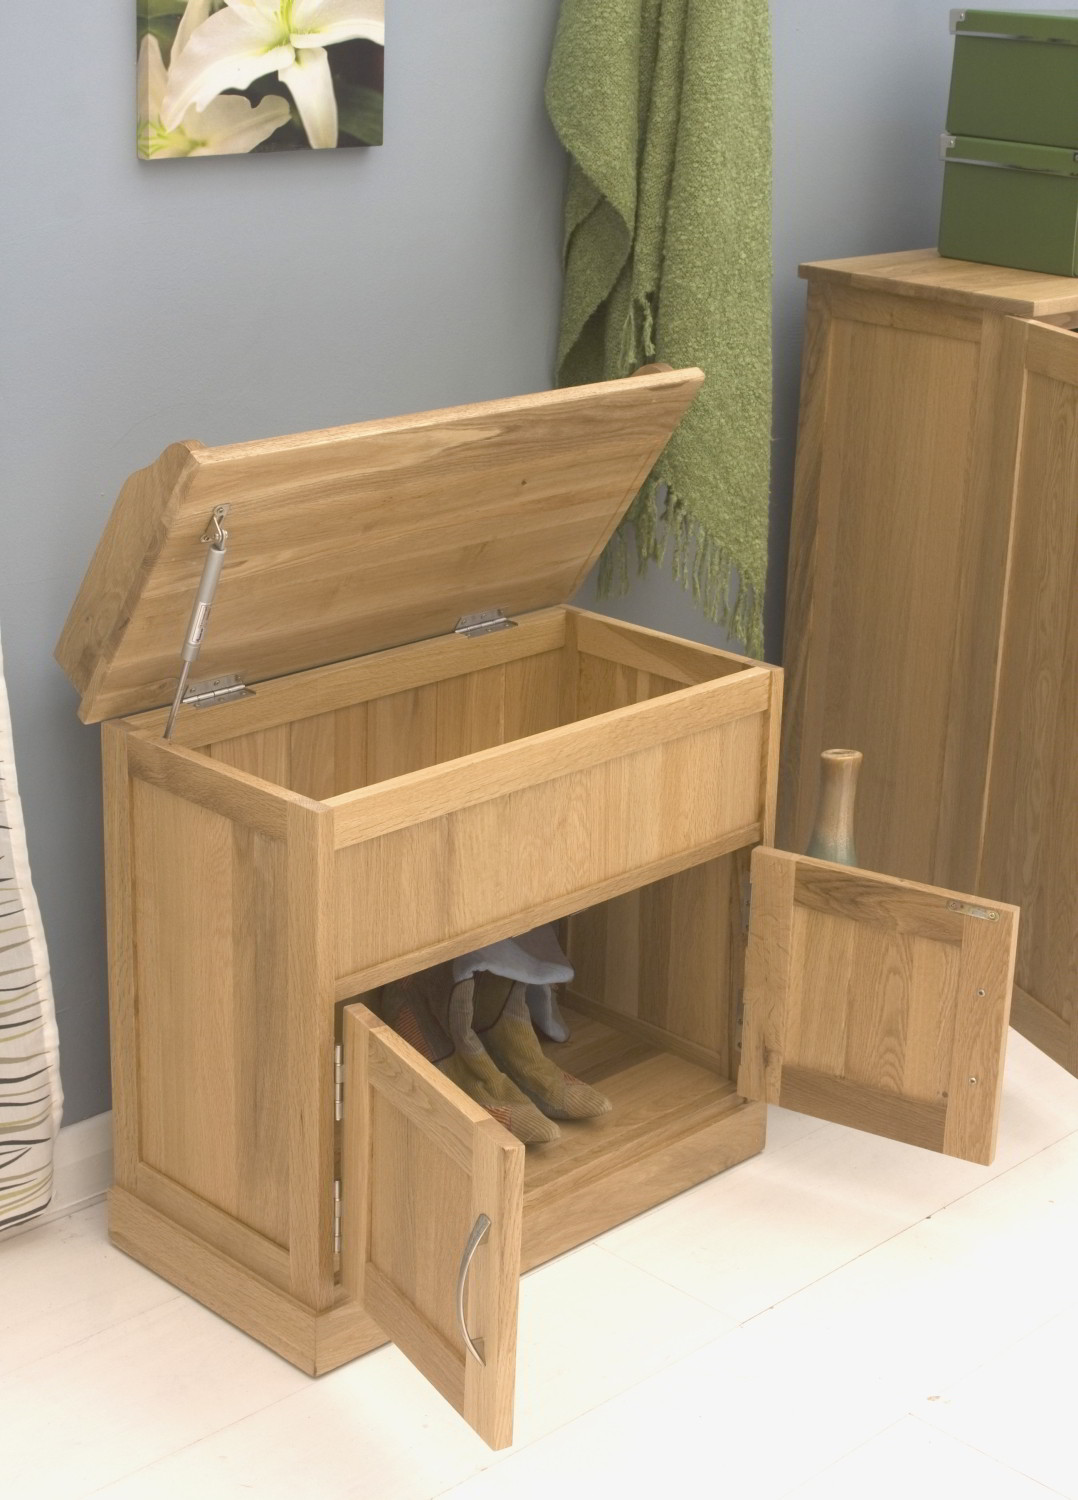 Conran Solid Oak Furniture Hallway Shoe Storage Bench Cabinet Ebay: shoe cabinet bench